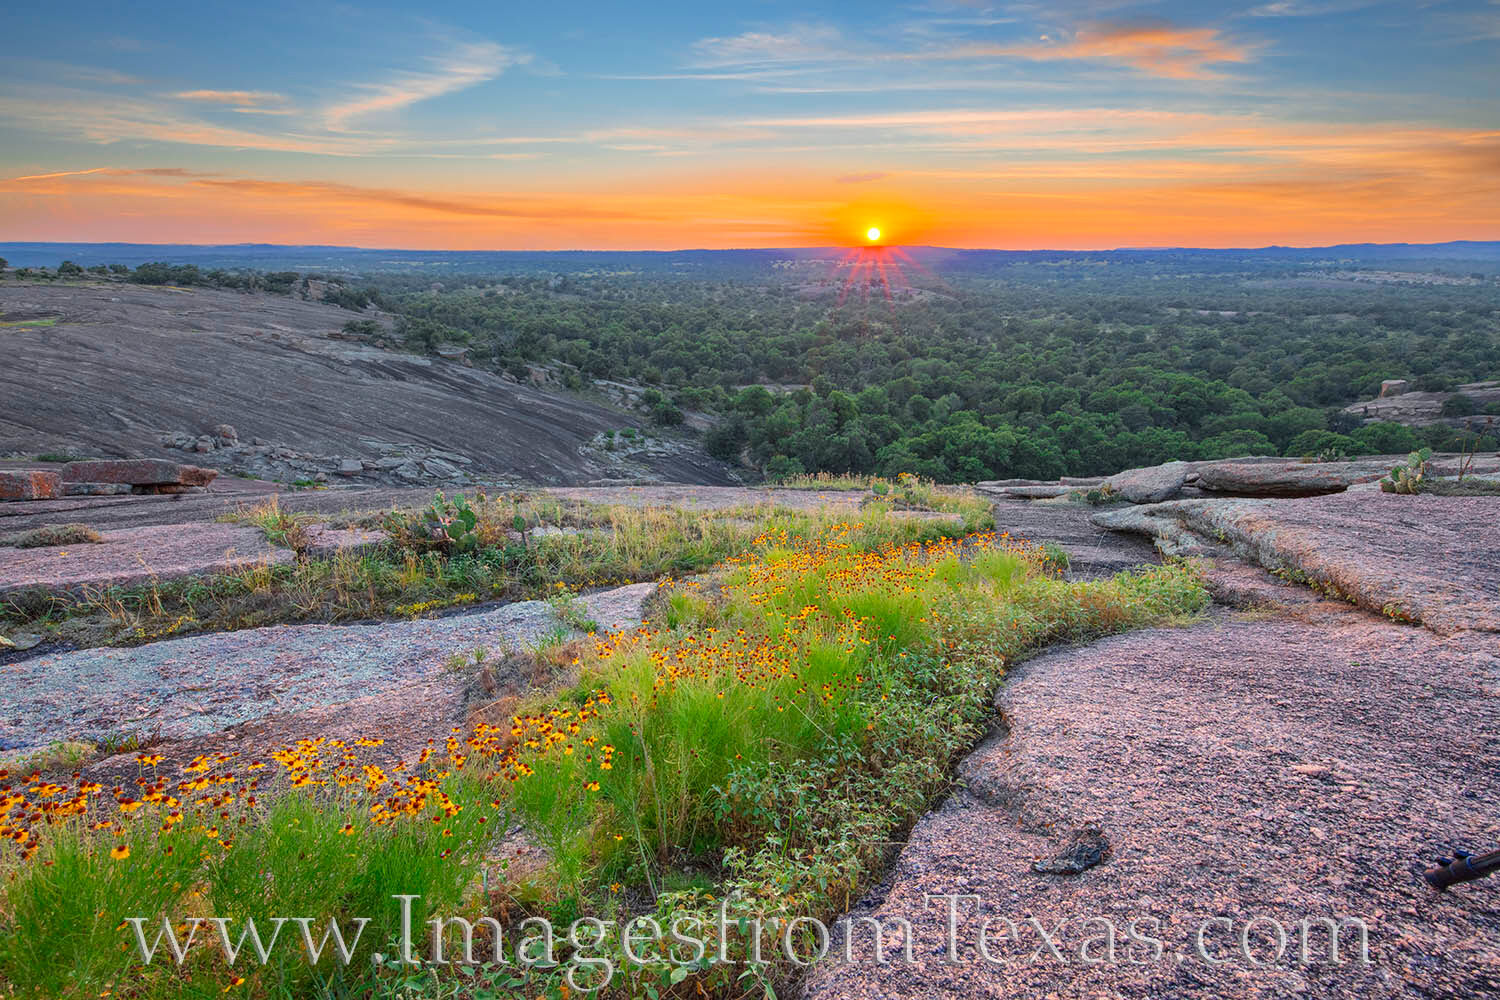 From Enchanted Rock State Natural Area, this view comes from Little Rock, a mound of granite just southwest from Enchanted Rock...